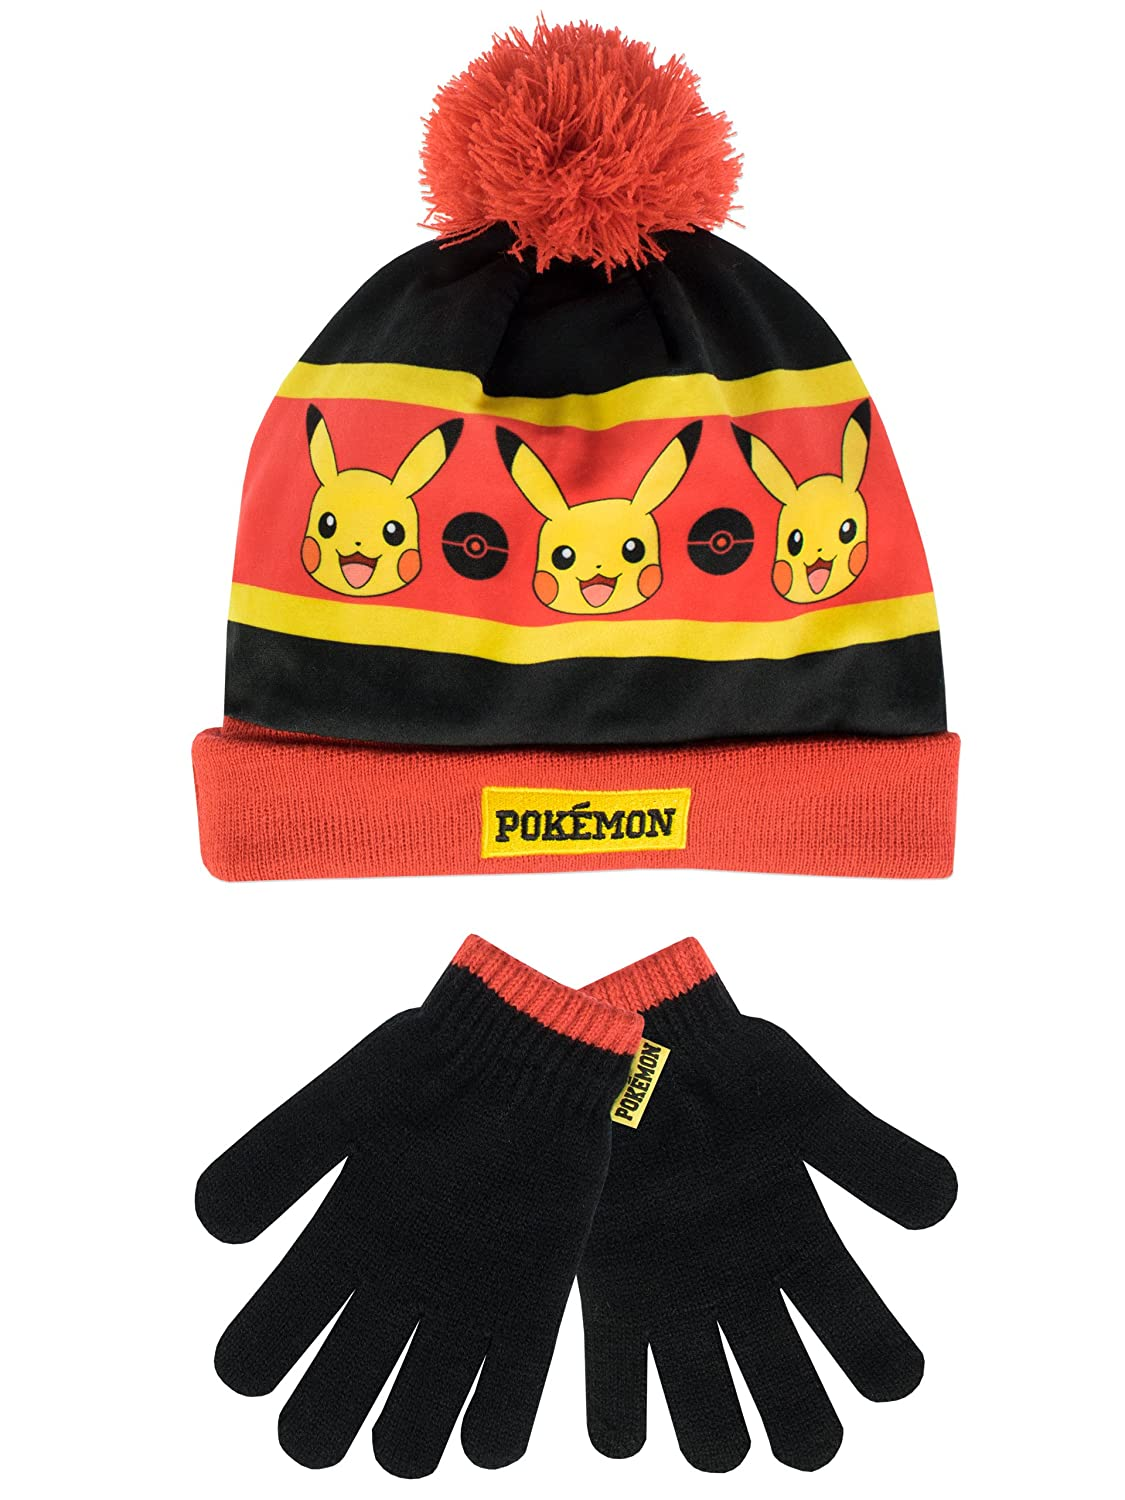 Pokemon Boys Pokemon Hat and Gloves Set Multicolored One Size